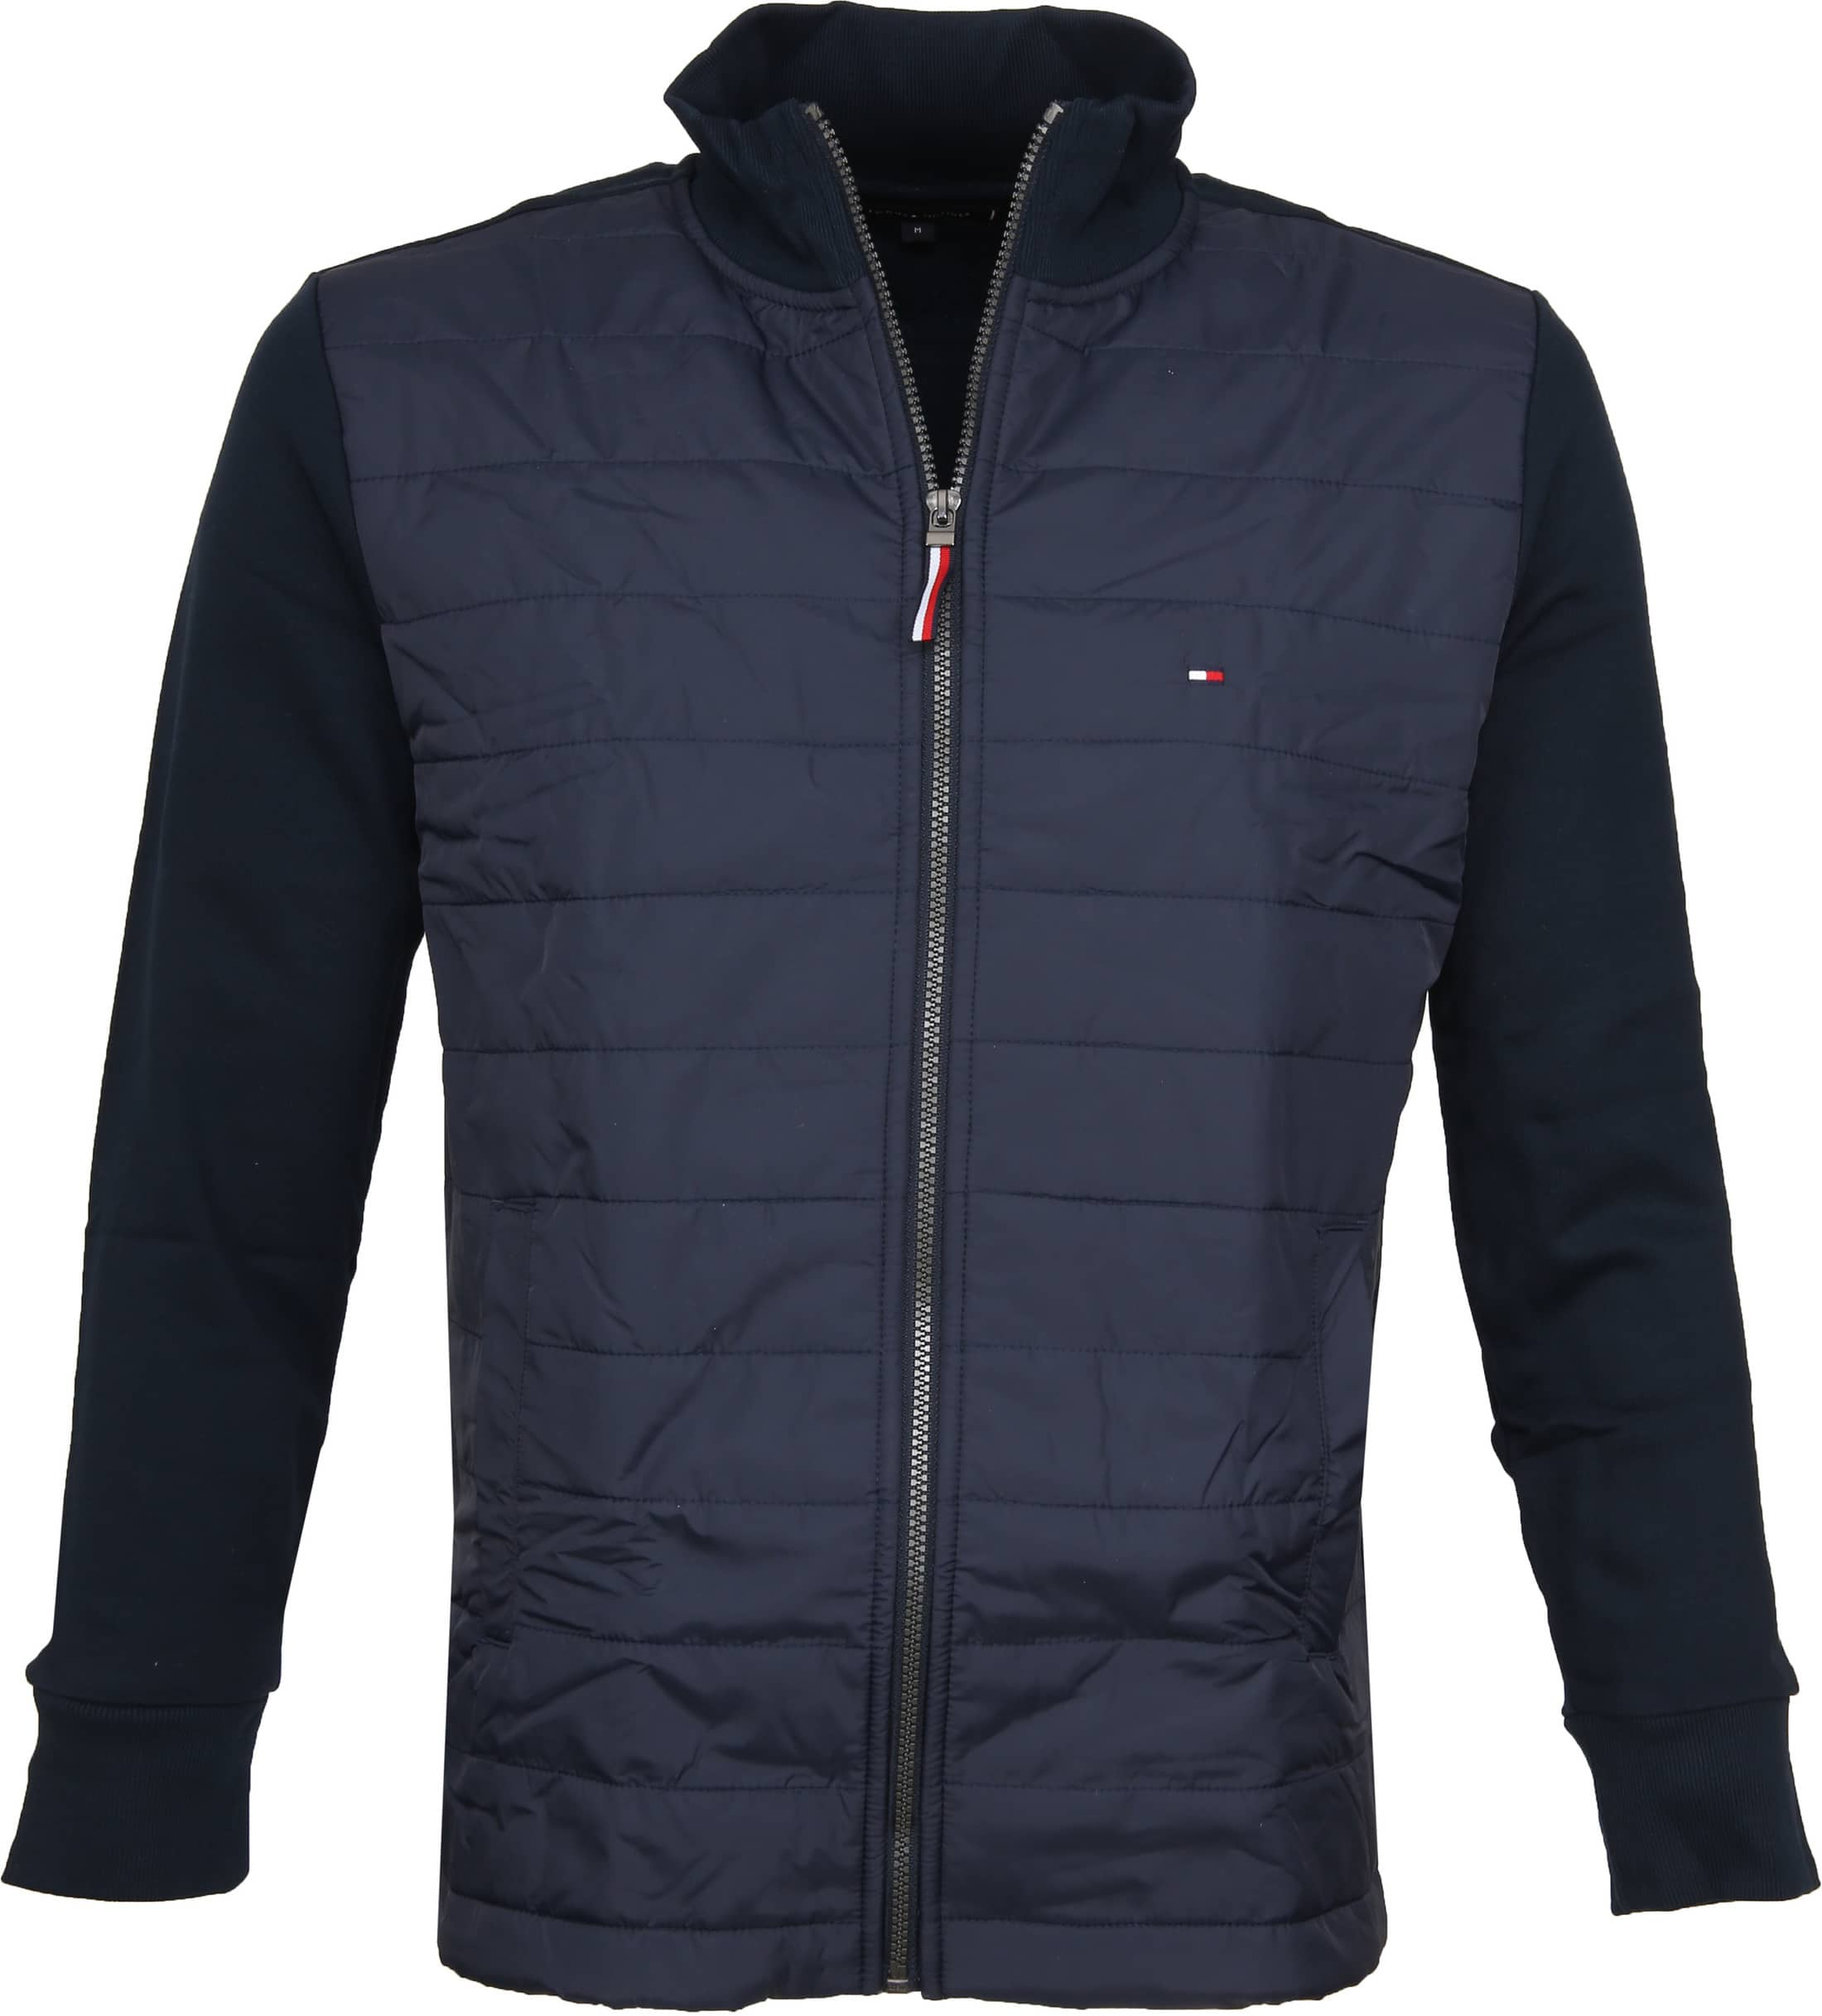 8a5d71fa Tommy Hilfiger Outdoor Cardigan Navy MW0MW10066403 order online ...